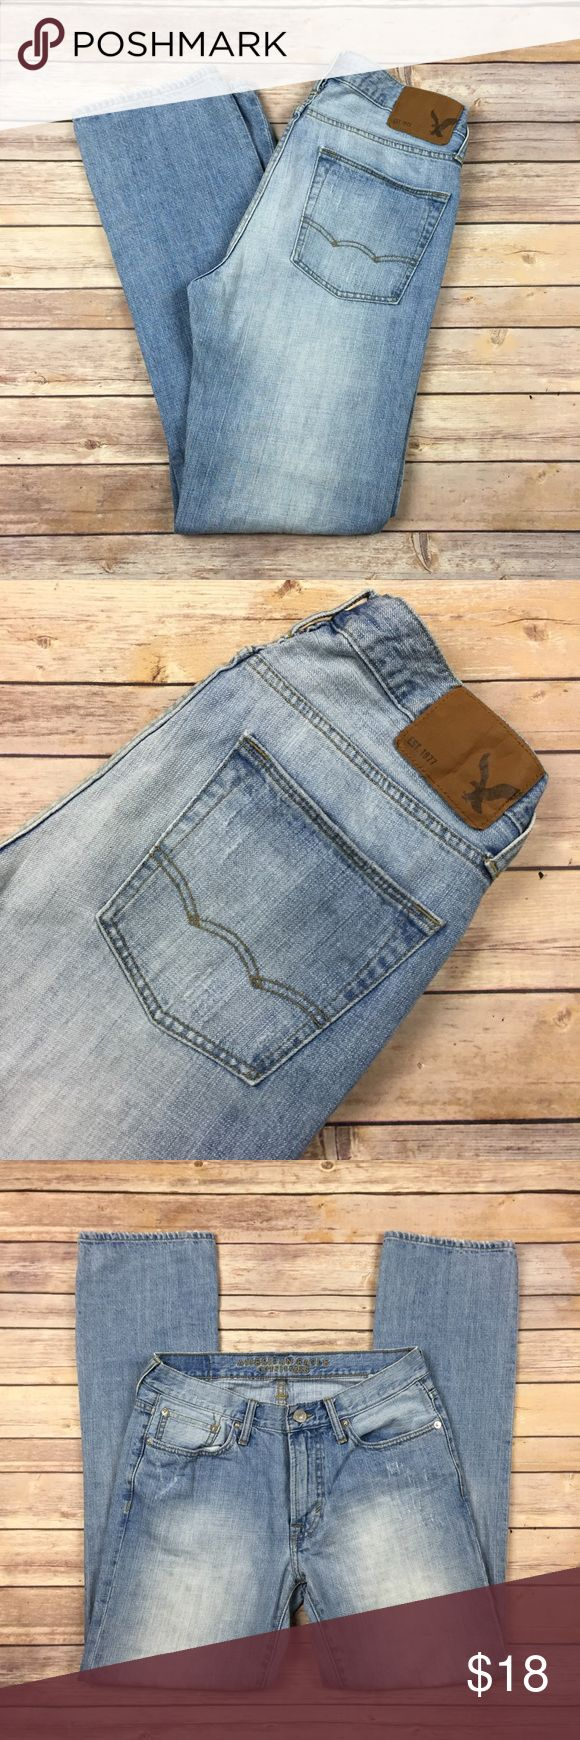 "American Eagle Original Straight Jeans Mens 30x32 American Eagle Original Straight Jeans  Mens 30x32  Light Distressed Wash 100% Cotton Gently pre-owned. No stains. No wear near the pocket corners.  Measurements taken laying flat: waist- 15"" rise- 9.5"" inseam- 32"" leg opening- 8""     Inventory location- B6 American Eagle Outfitters Jeans Straight"